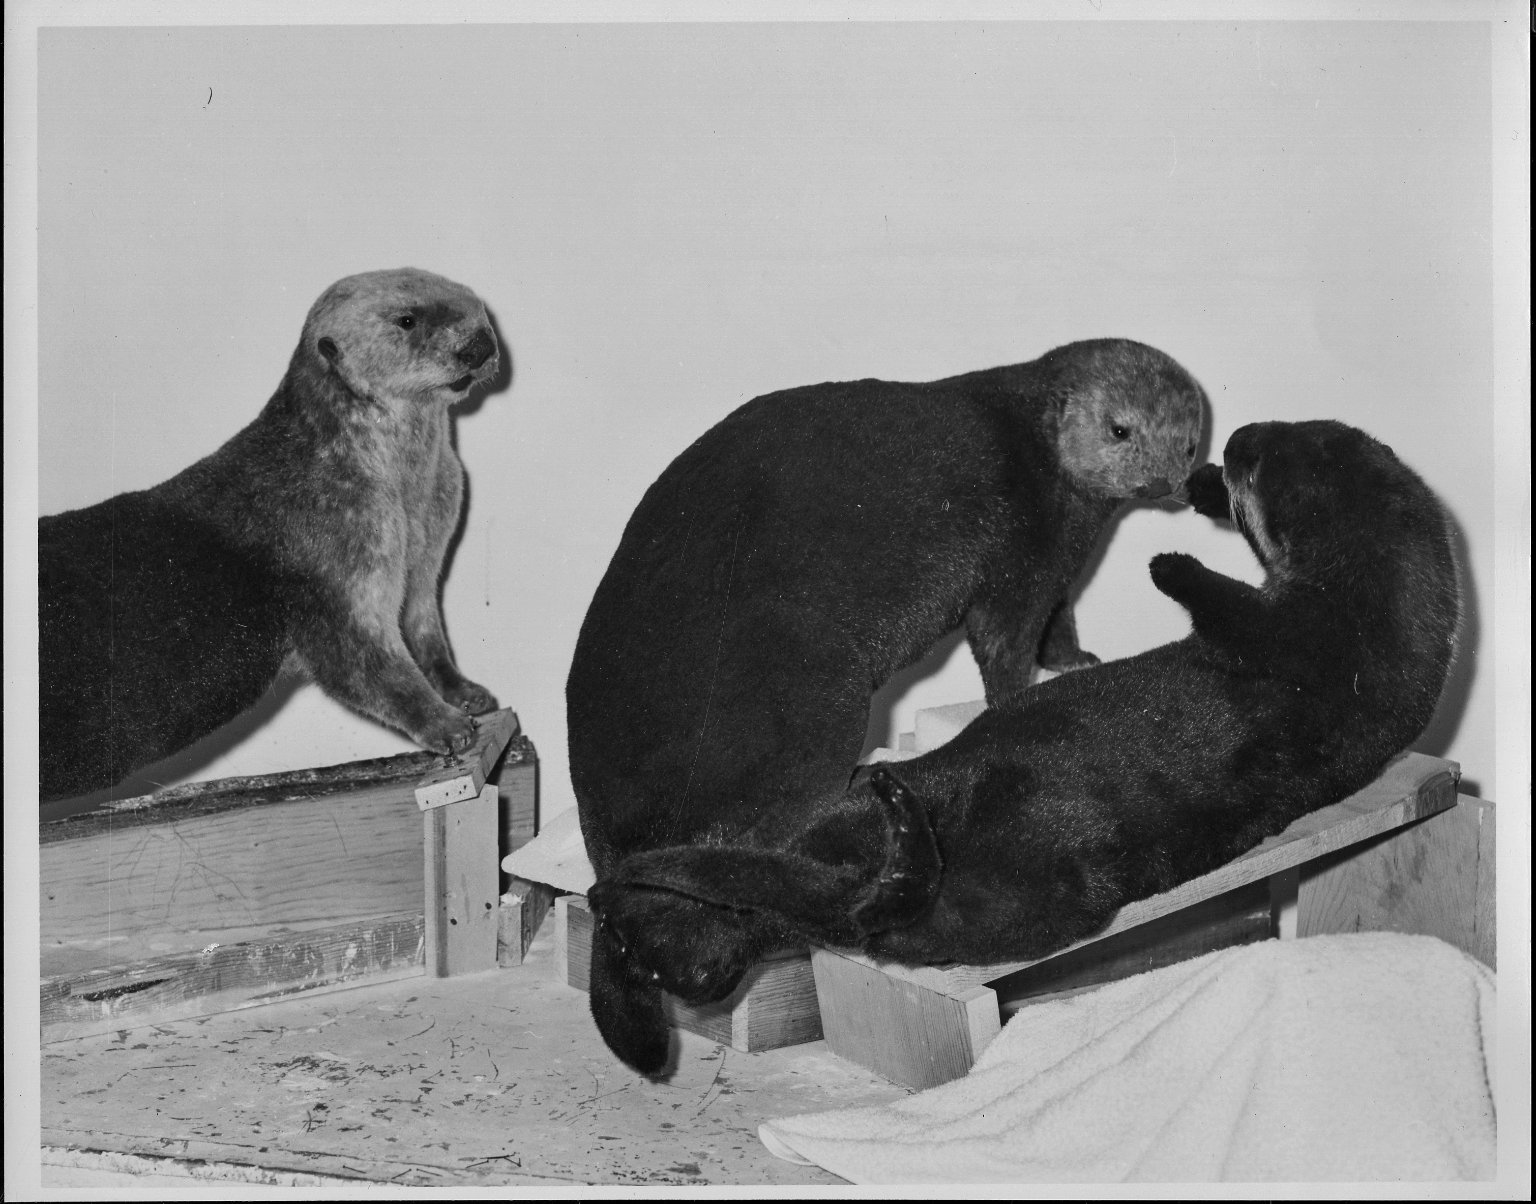 Mount being prepared for Otter exhibit